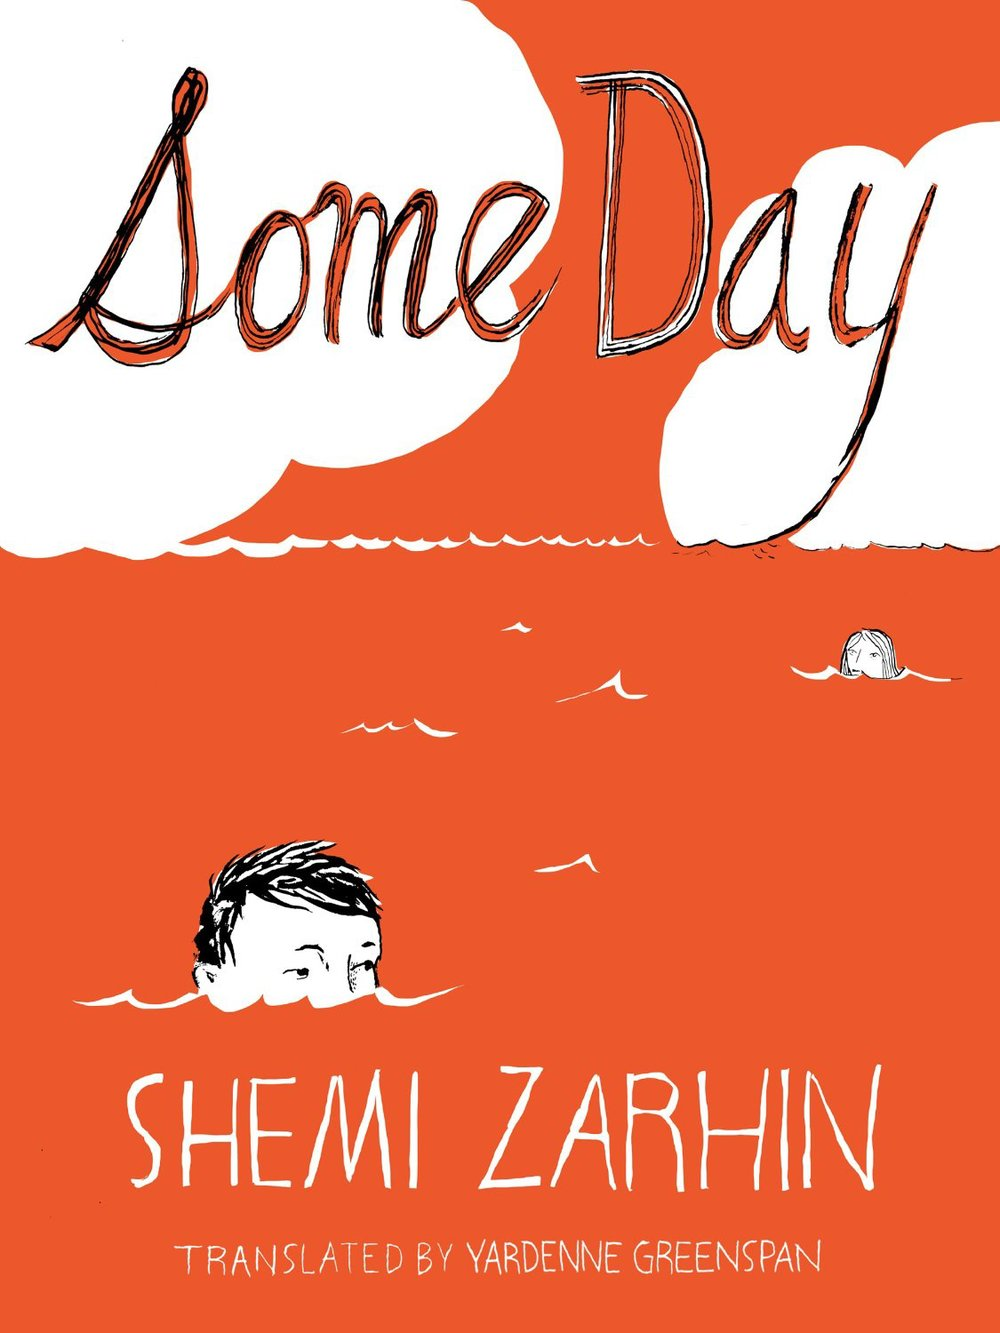 by Shemi Zarhin, translated from HEBREW by Yardenne Greenspan